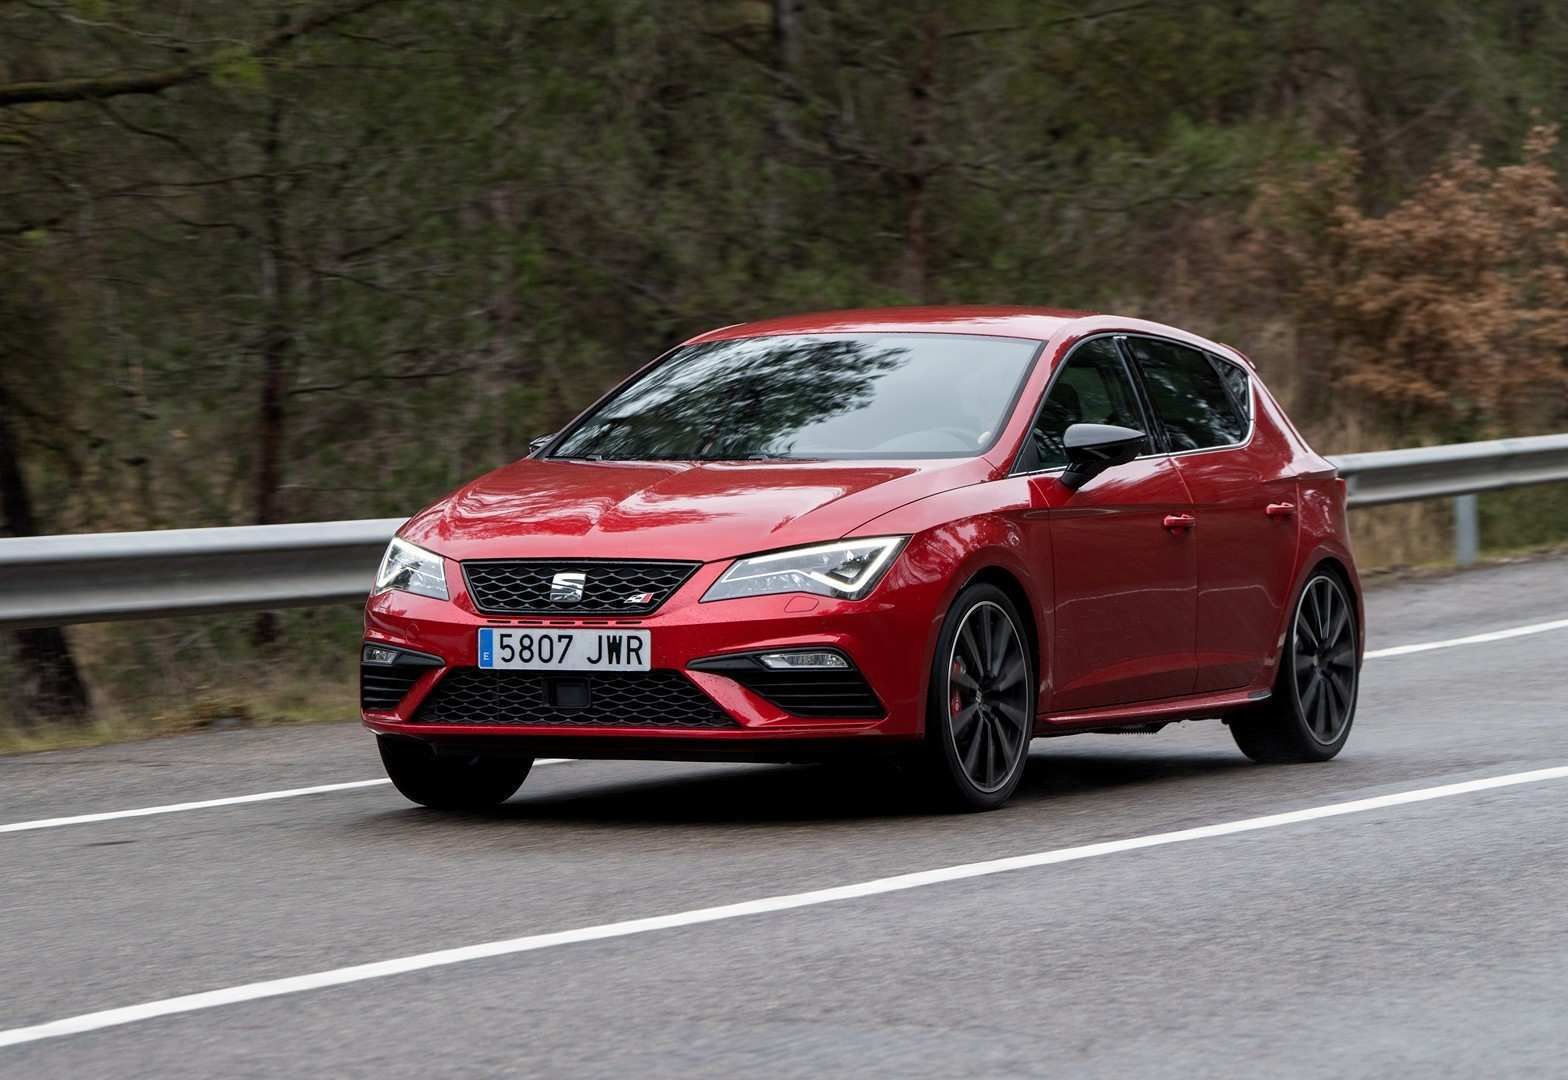 47 The Best 2020 Seat Ibiza Images